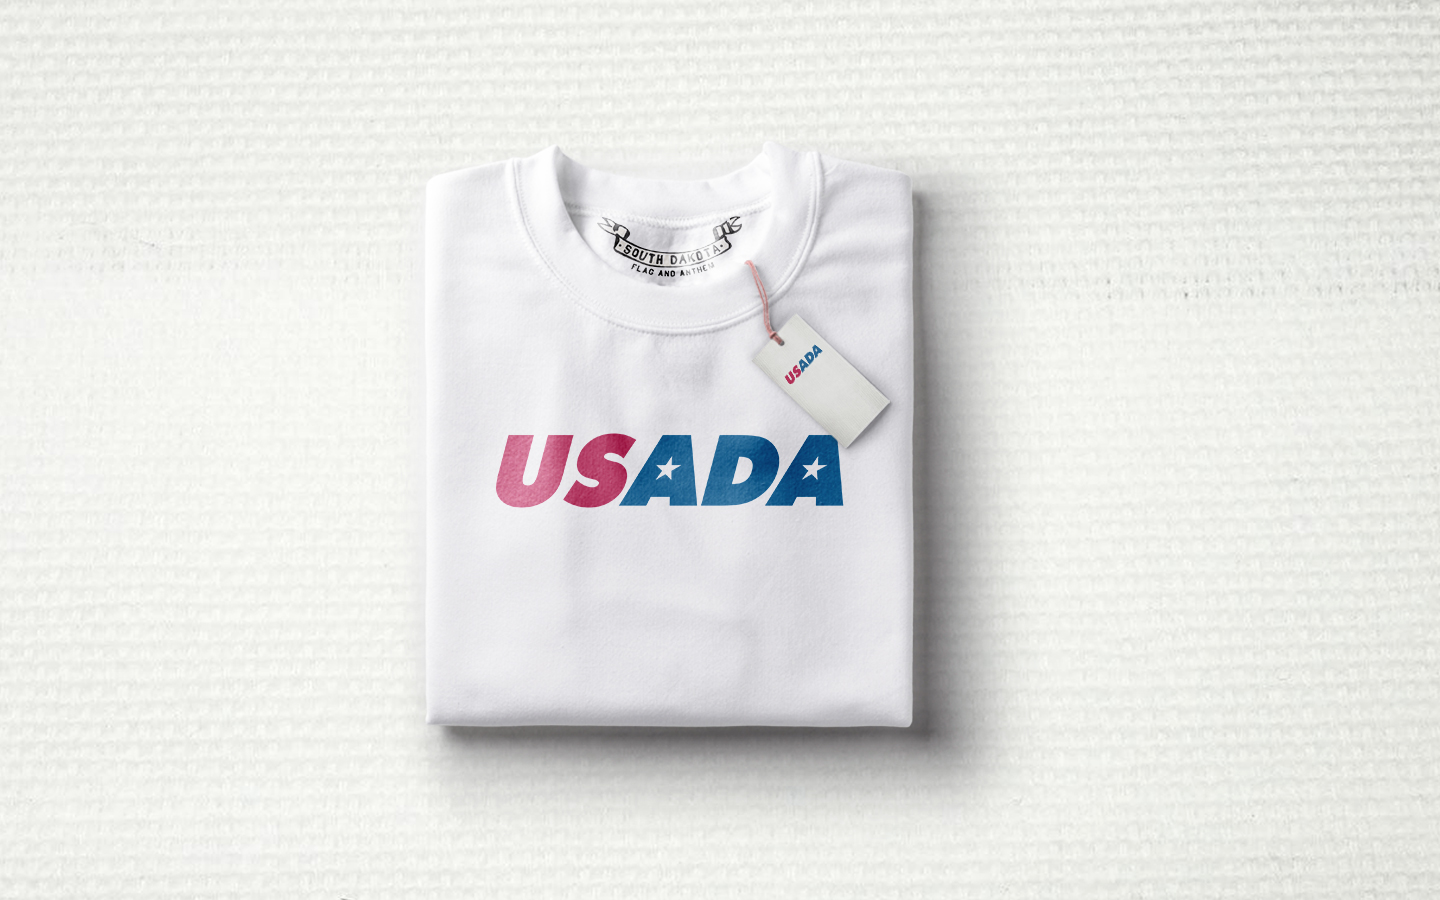 USADA T-shirt Design